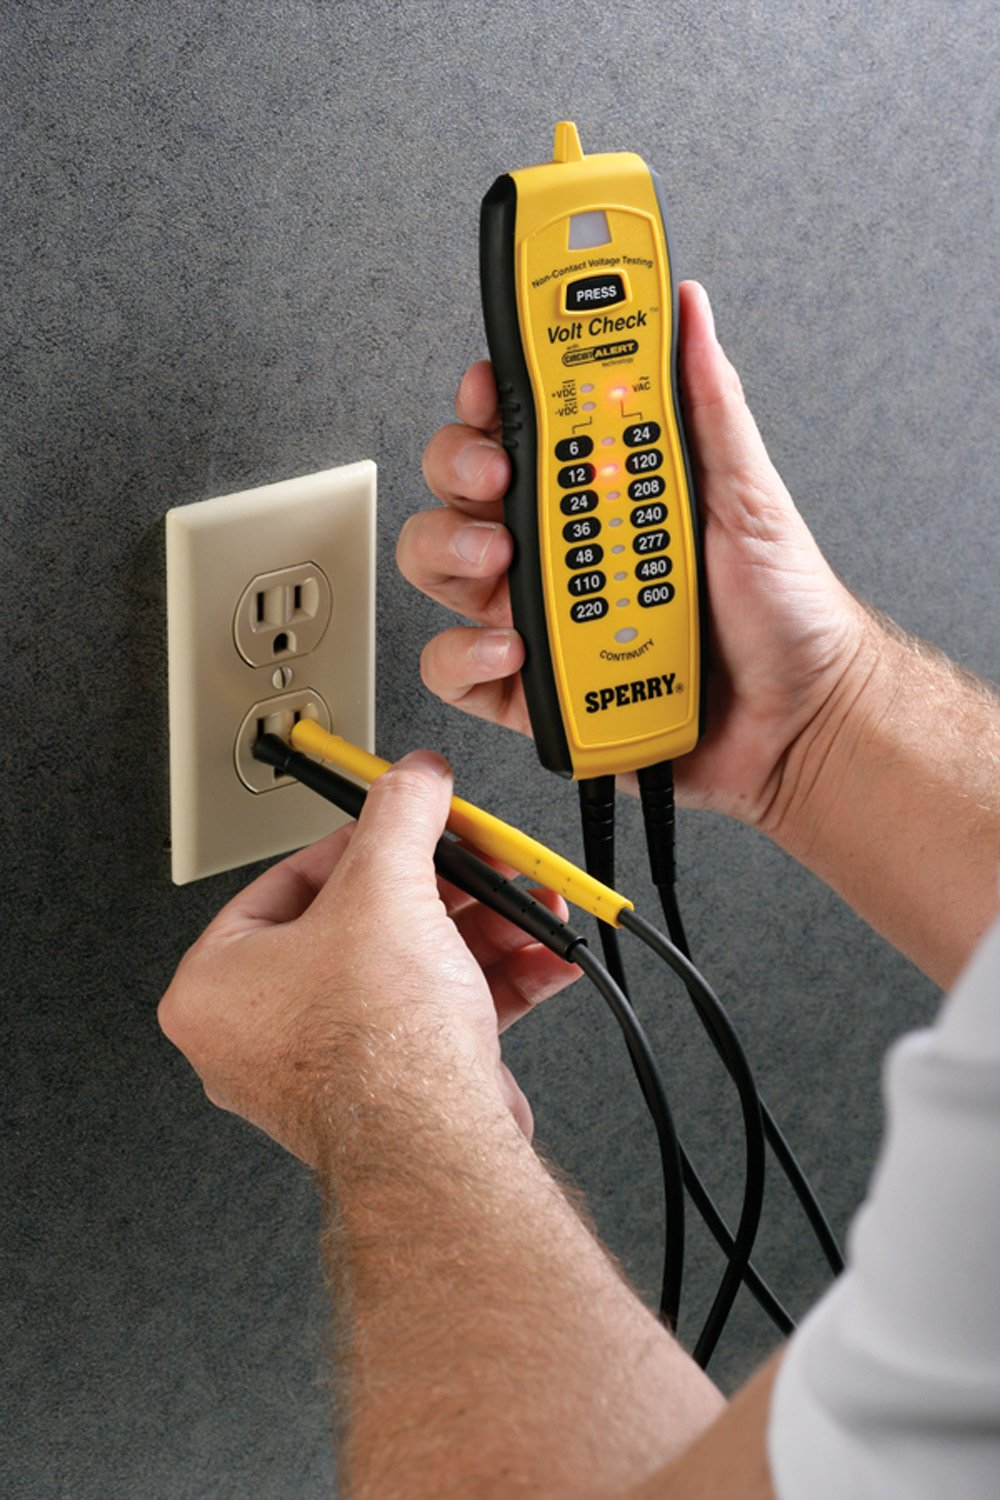 Sperry Instruments Vc61000 Volt Check Voltage Continuity Tester Testing Equipment Testers Circuit Breaker Black Yellow